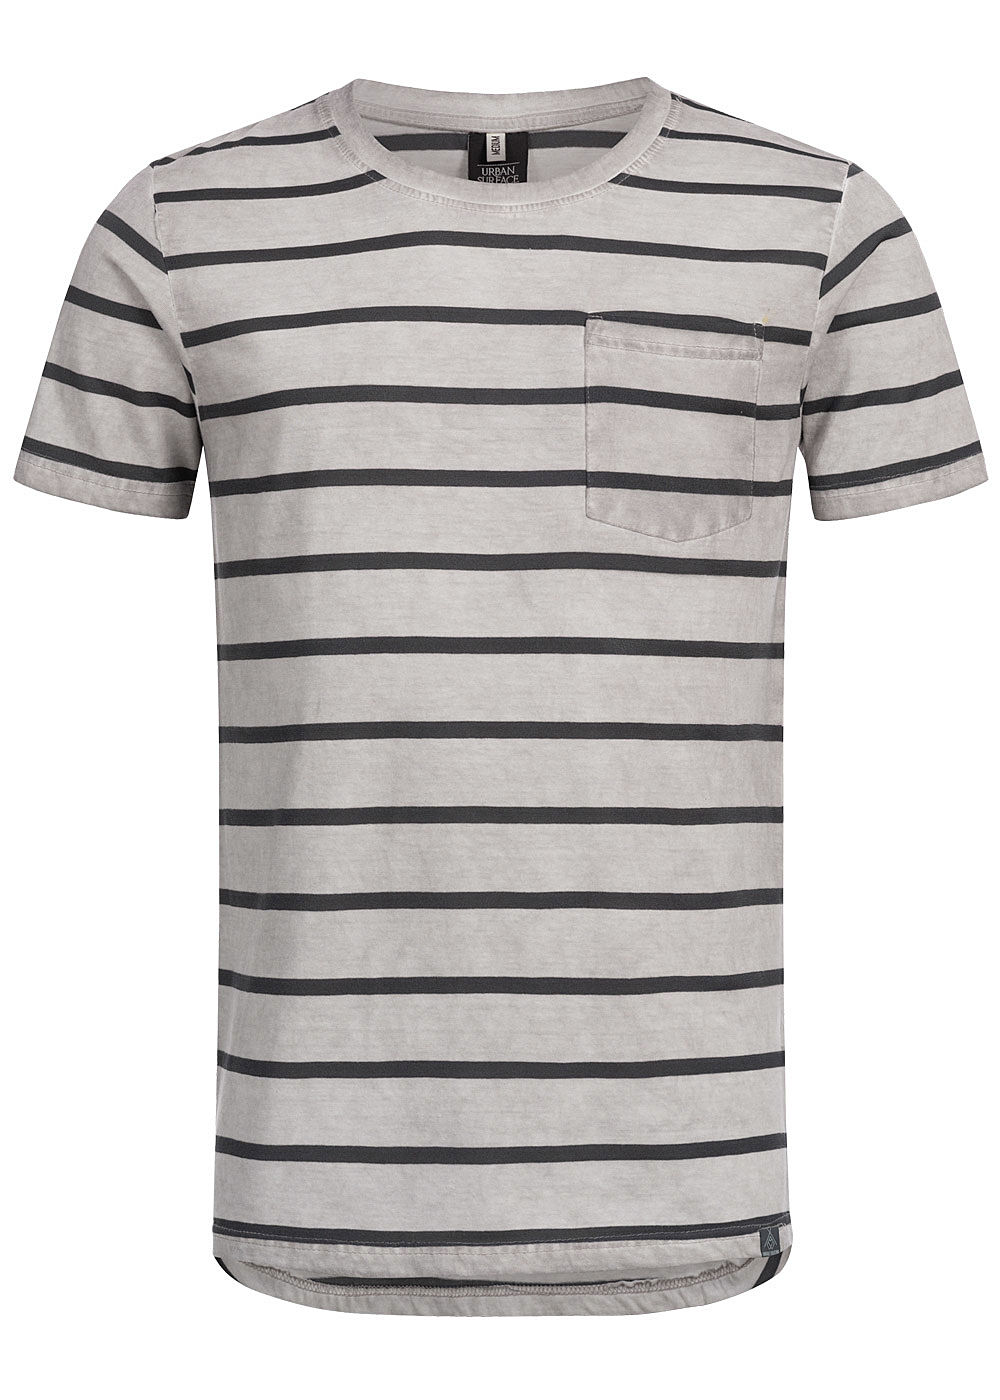 Eight2Nine Herren Striped Special Color Effect T-Shirt by Urban Surface hell grau - Art.-Nr.: 19072780